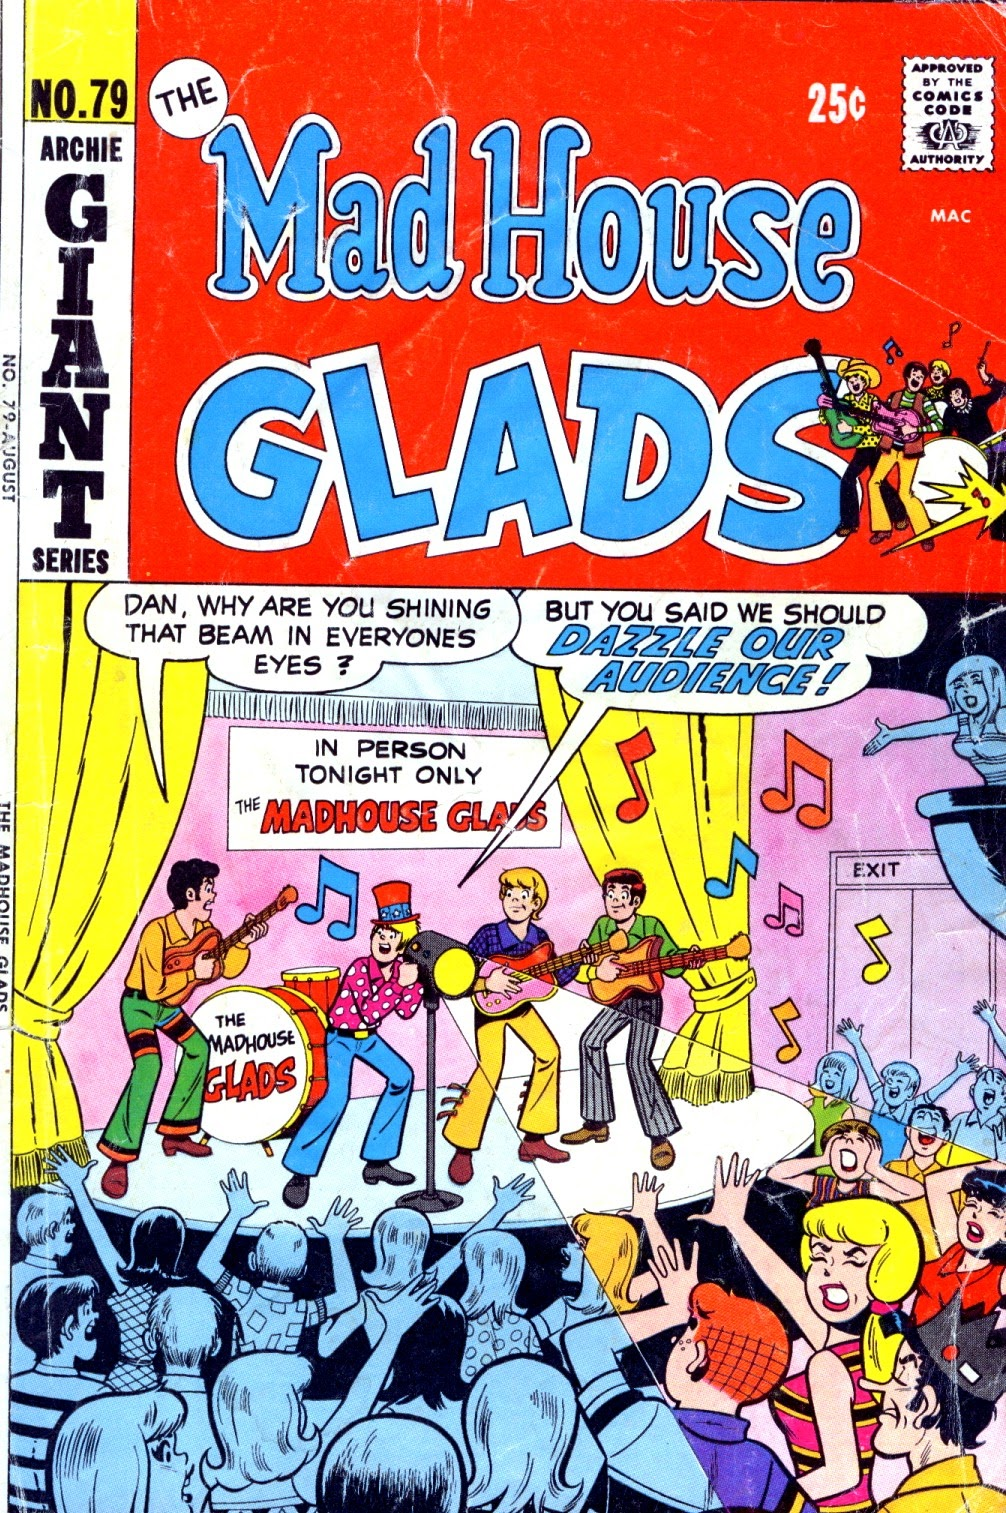 Read online The Mad House Glads comic -  Issue #79 - 1